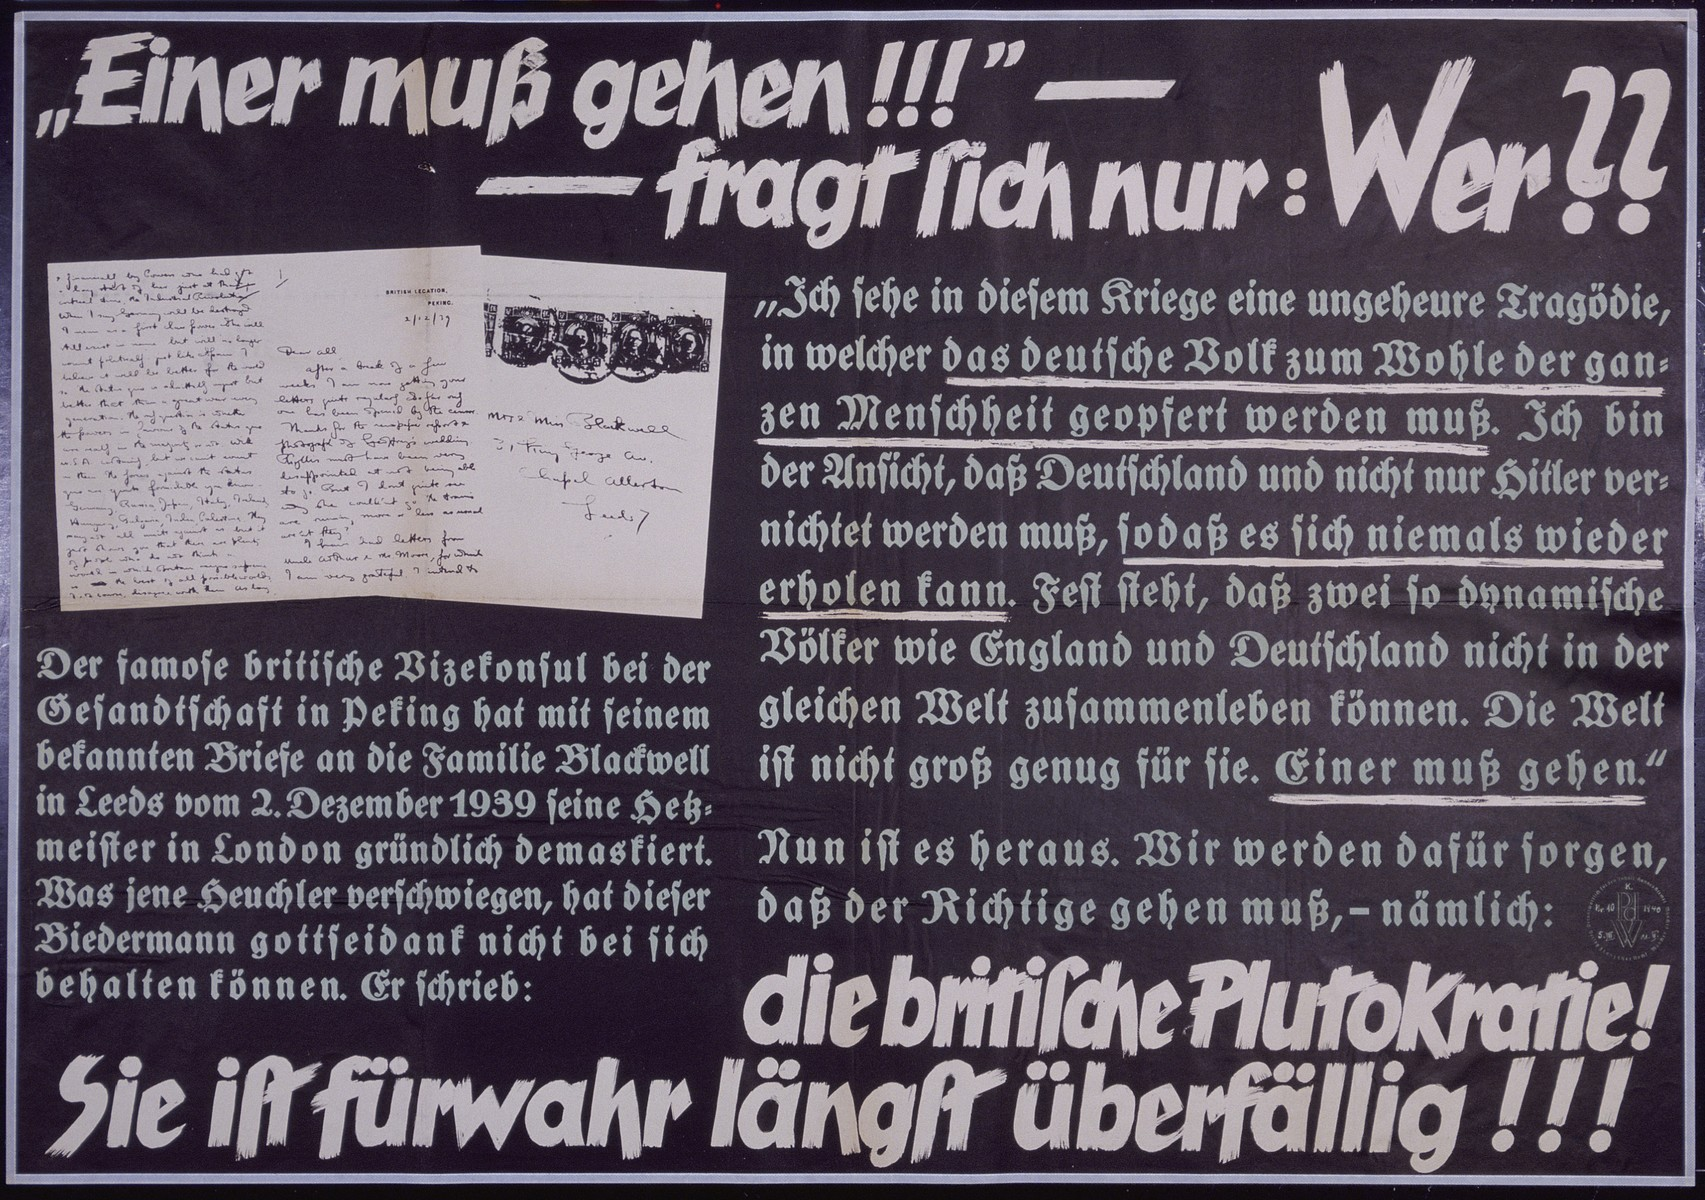 """Nazi propaganda poster entitled, """"Einer muss gehen!"""" issued by the """"Parole der Woche,"""" a wall newspaper (Wandzeitung) published by the National Socialist Party propaganda office in Munich."""